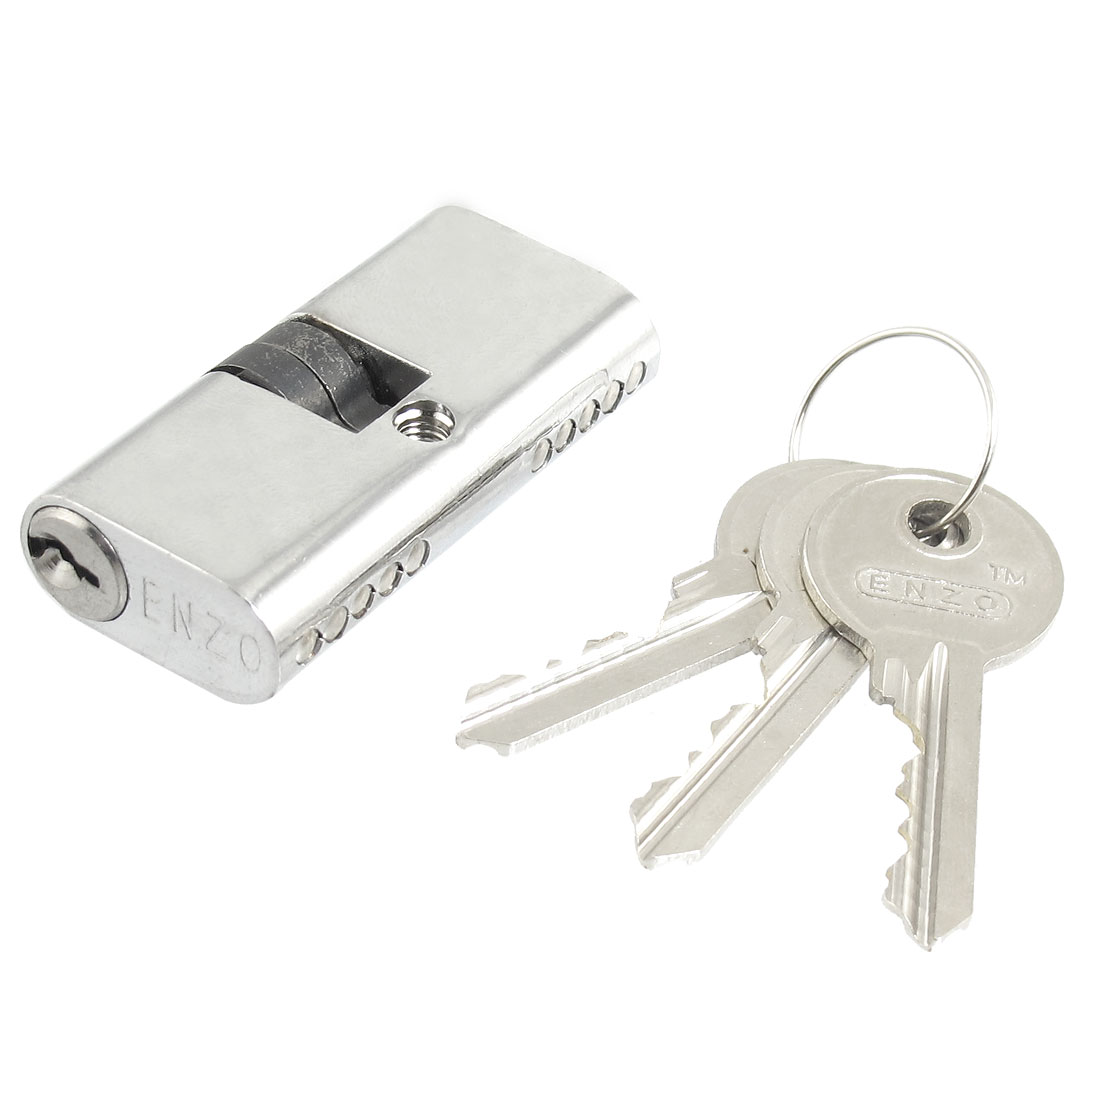 Silver Tone Cross Keyway Cupboard Security Cylindrical Lock 4.3mm Dia